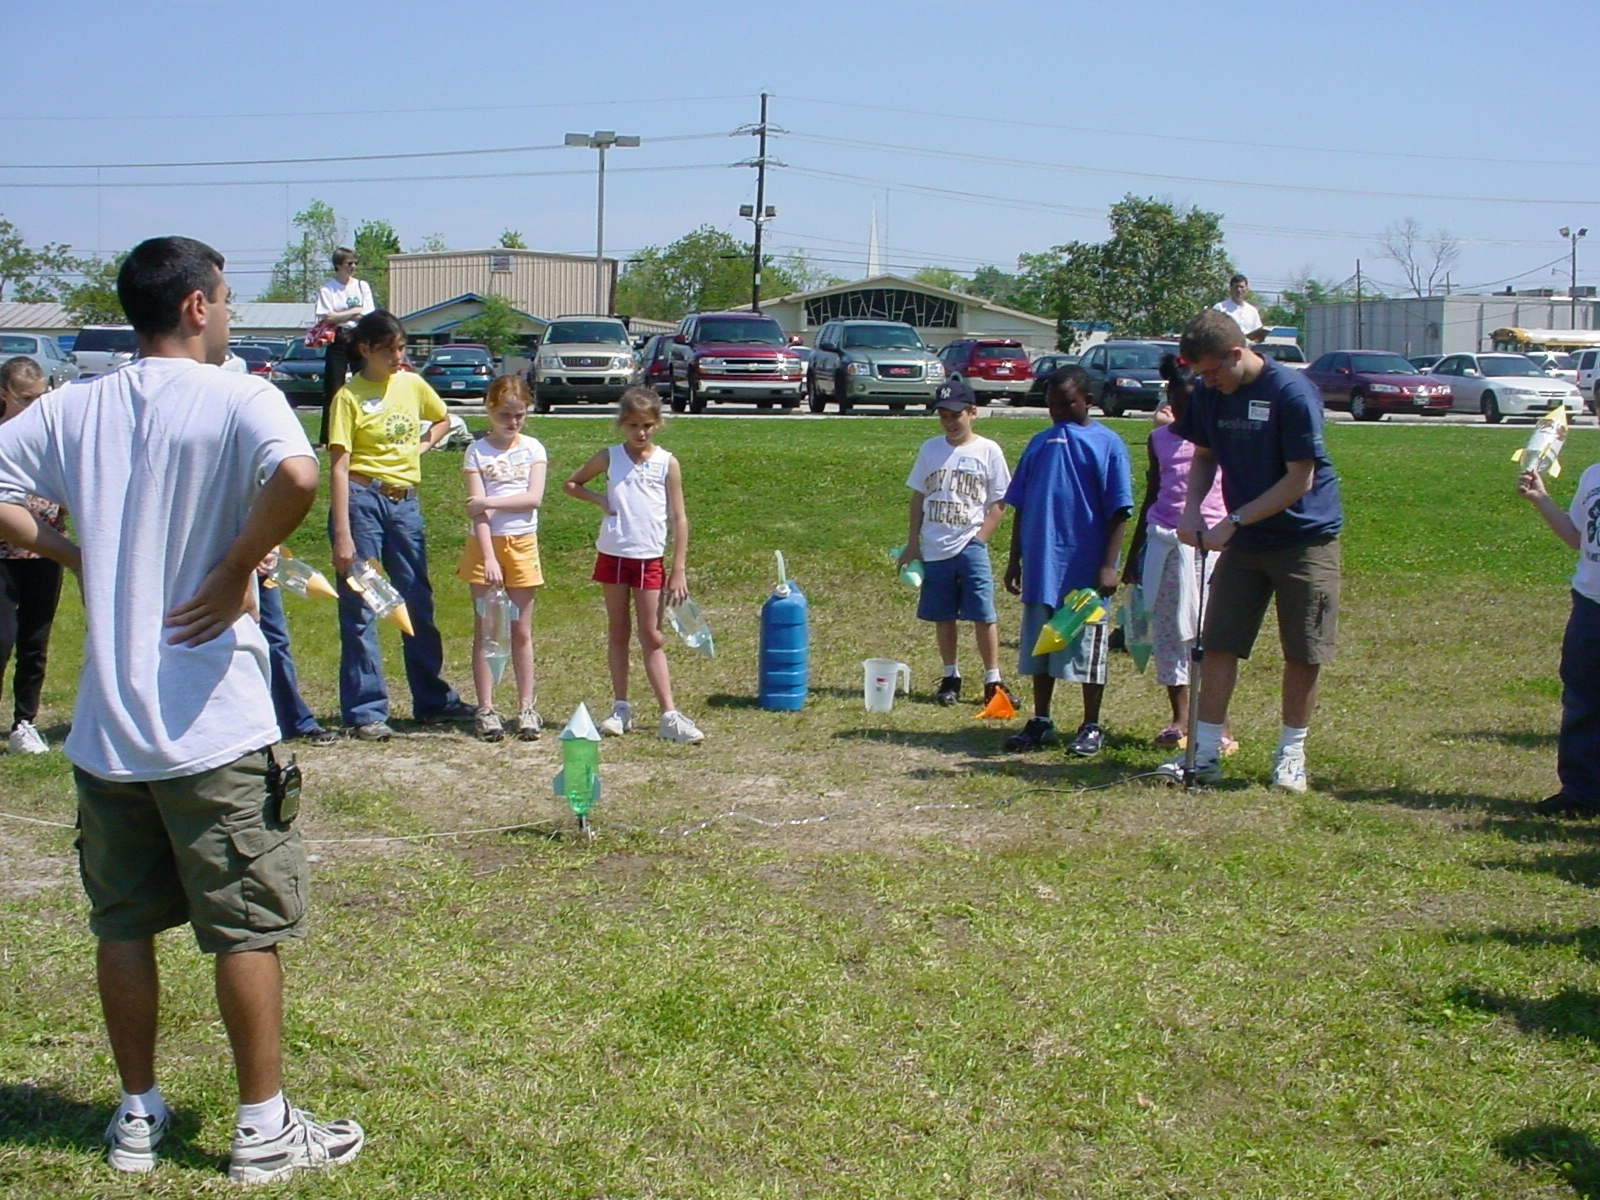 Photo of  4-H'ers participating in science activities